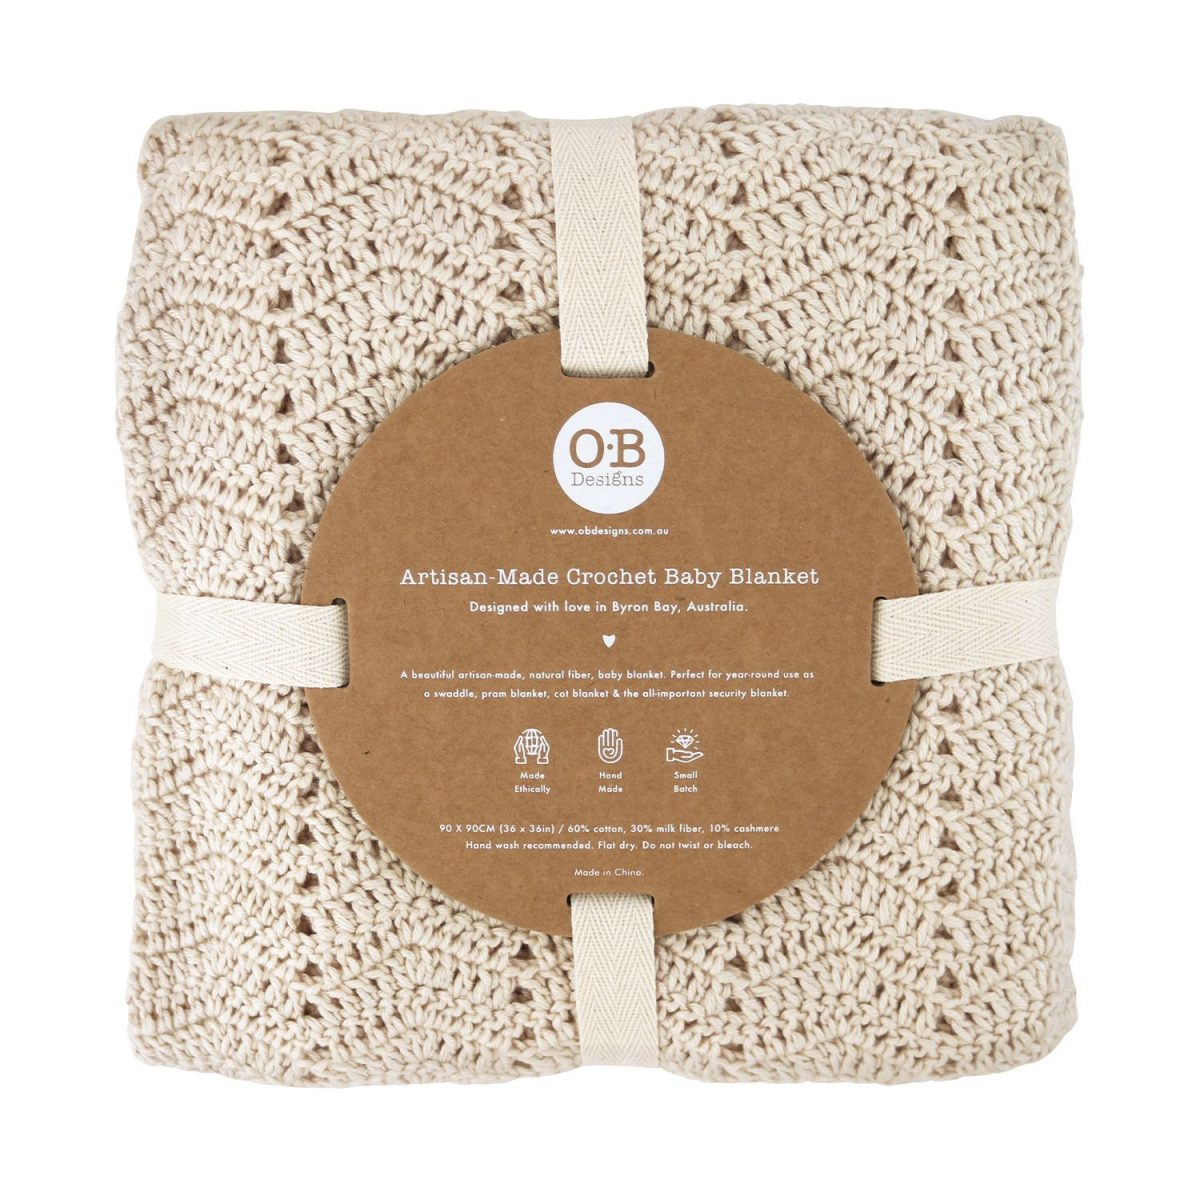 O.B Designs packaged vanilla baby blanket